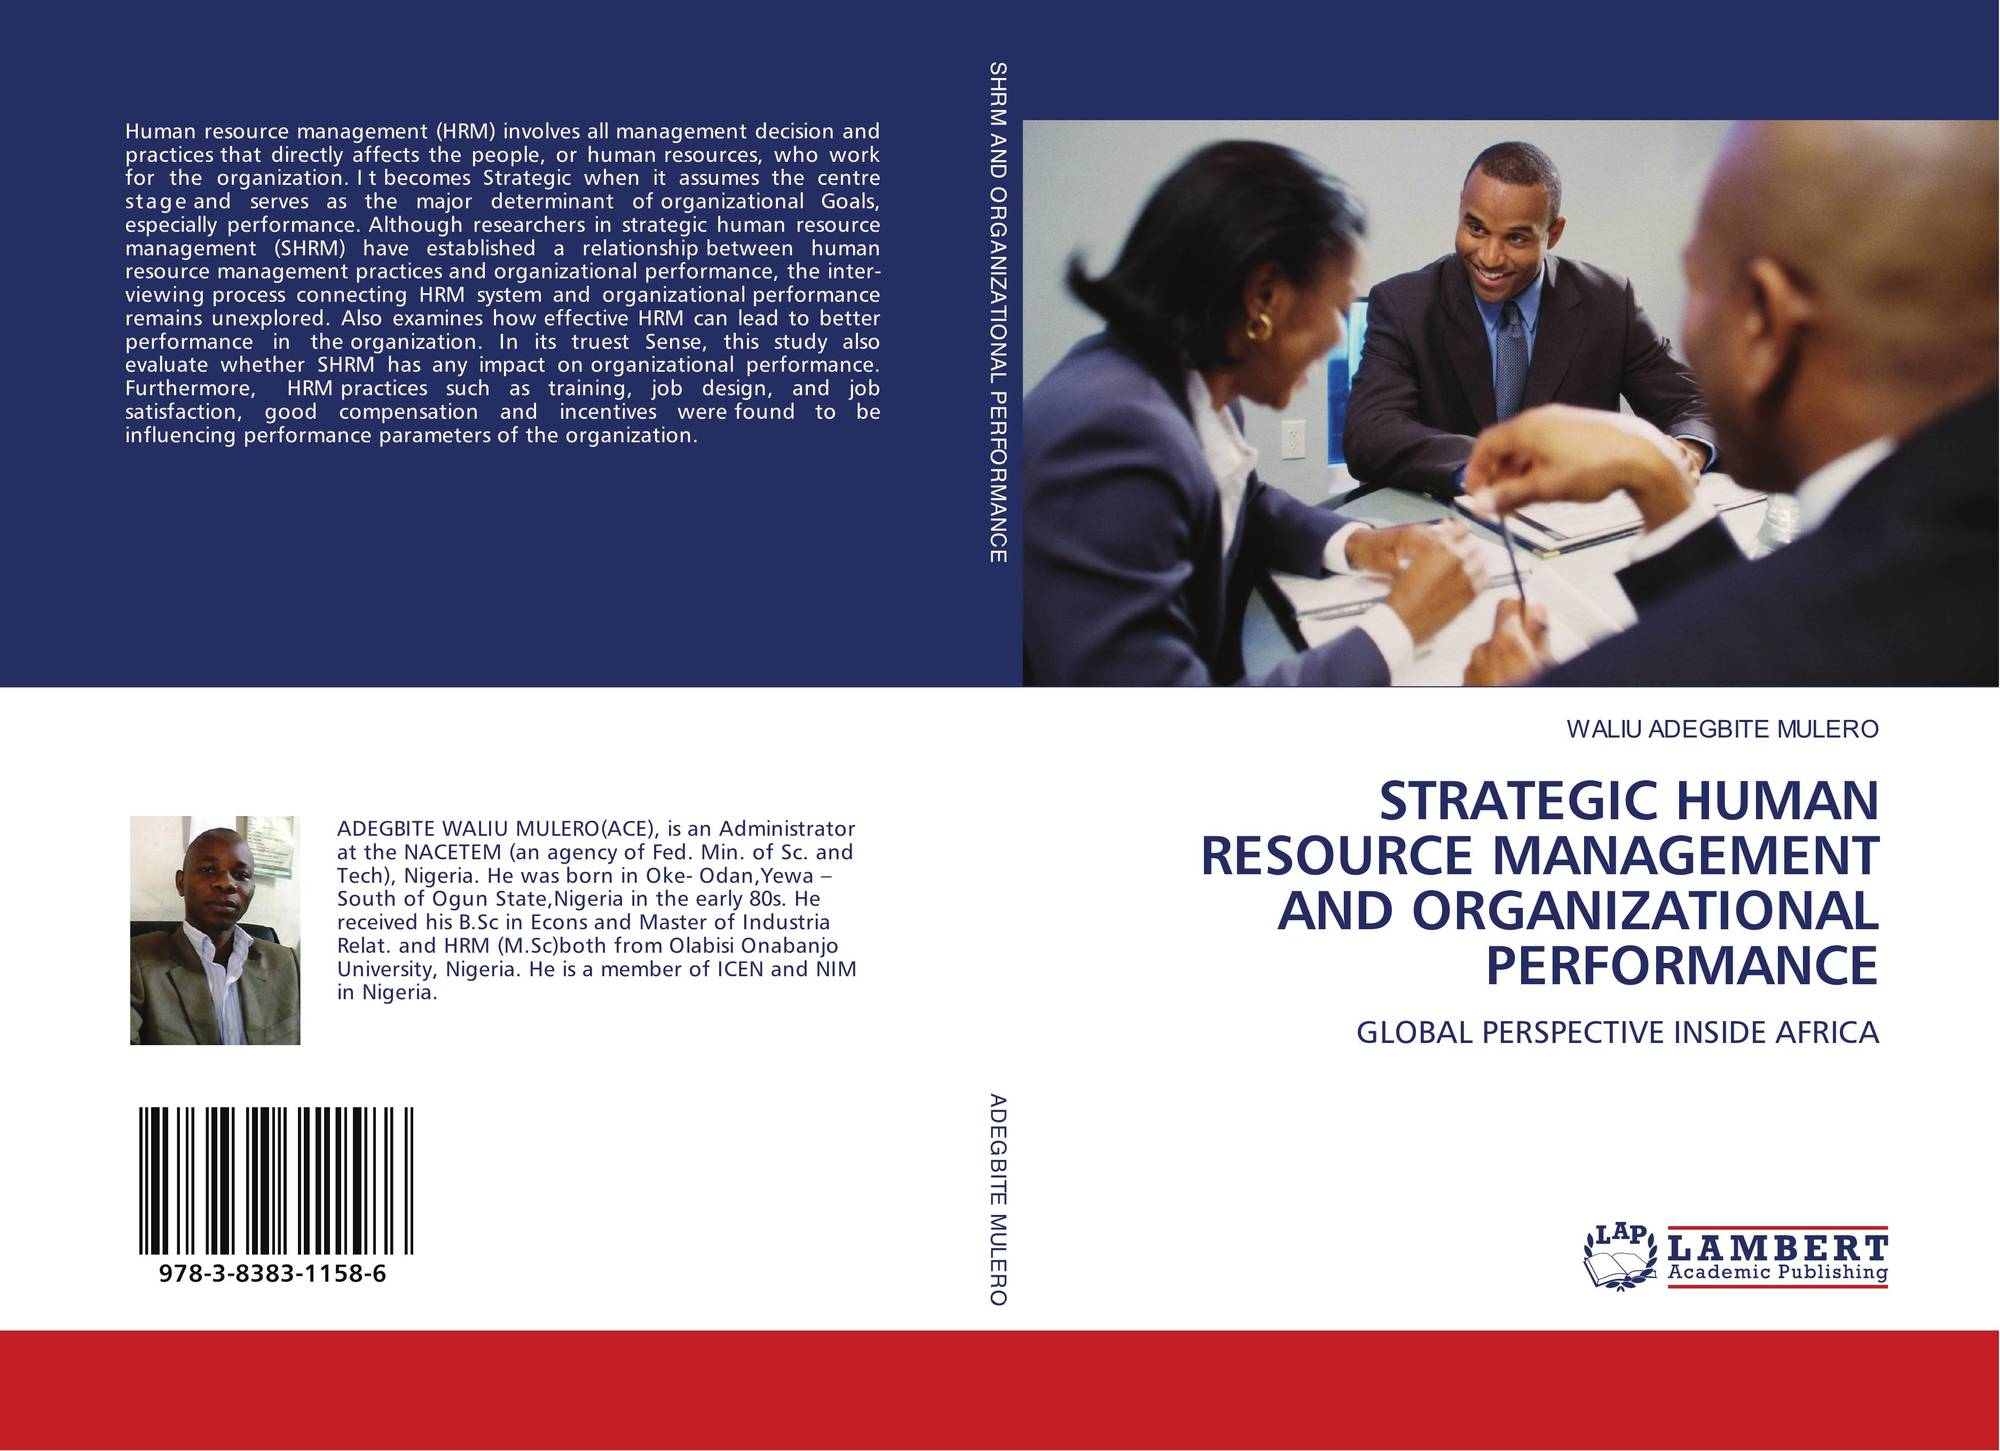 strategic hr practices and organizational performance Effect of shrm practices on organizational performance strategic human resource management practices the researchers have chosen to select seven strategic human resource management (shrm) practices and twenty five questions in a structured questionnaire.